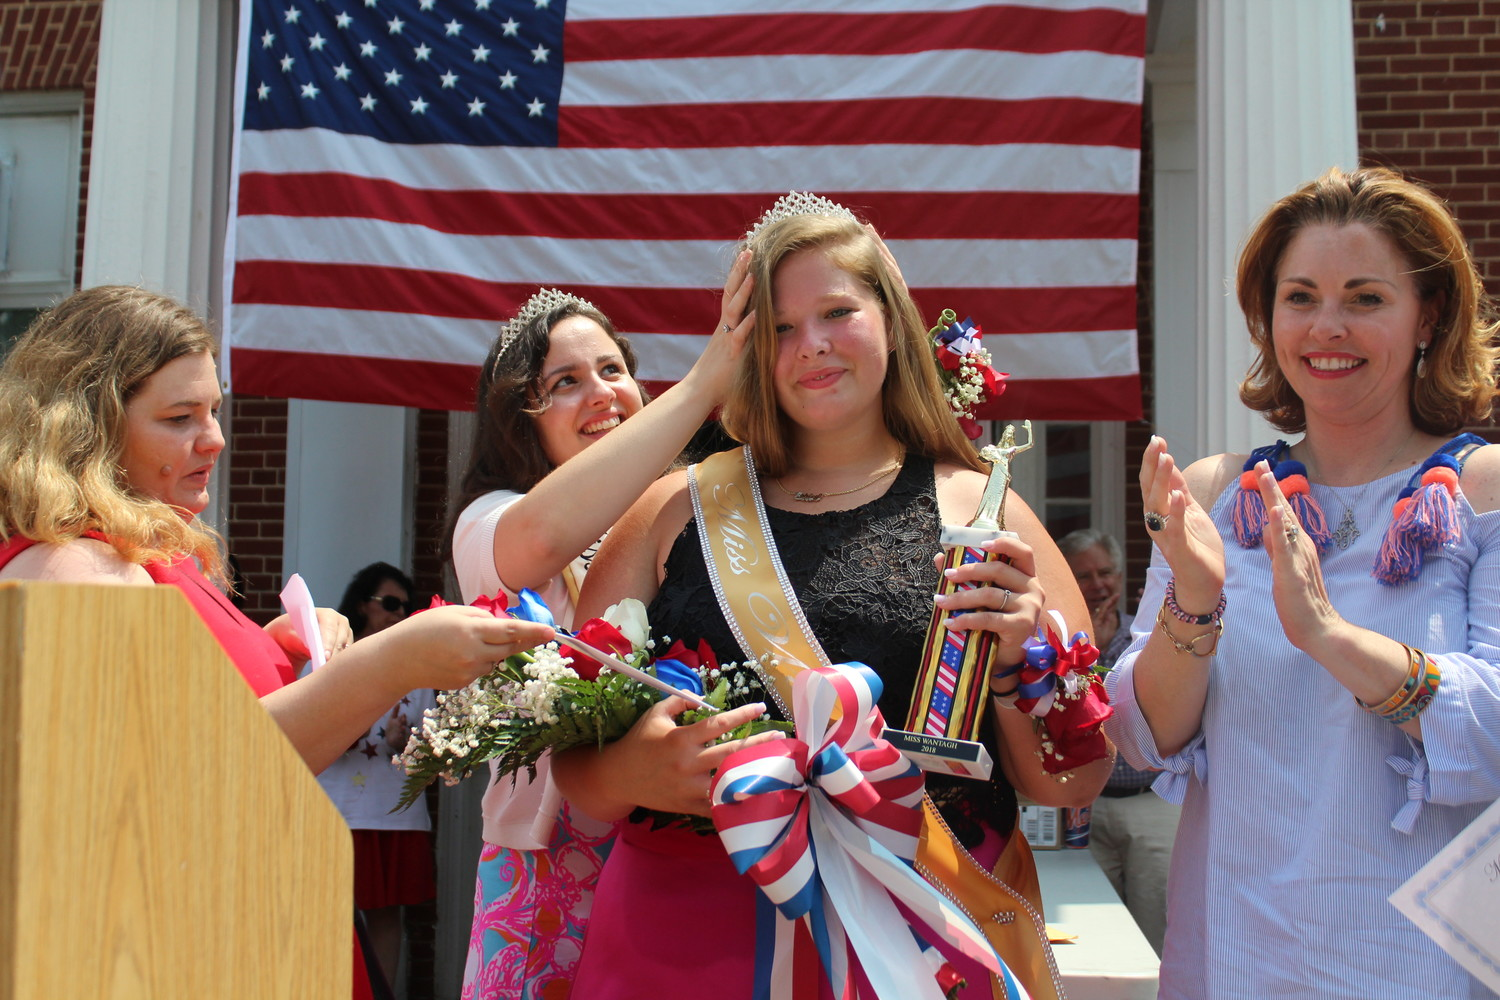 Ashley Bailey, a Wantagh High School and Gerald R. Claps Technical Center student, was crowned Miss Wantagh on July Fourth. Samantha Walsh, Miss Wantagh 2017, helped fix her tiara, while Town of Hempstead Councilwoman Erin King Sweeney, right, celebrated with her.